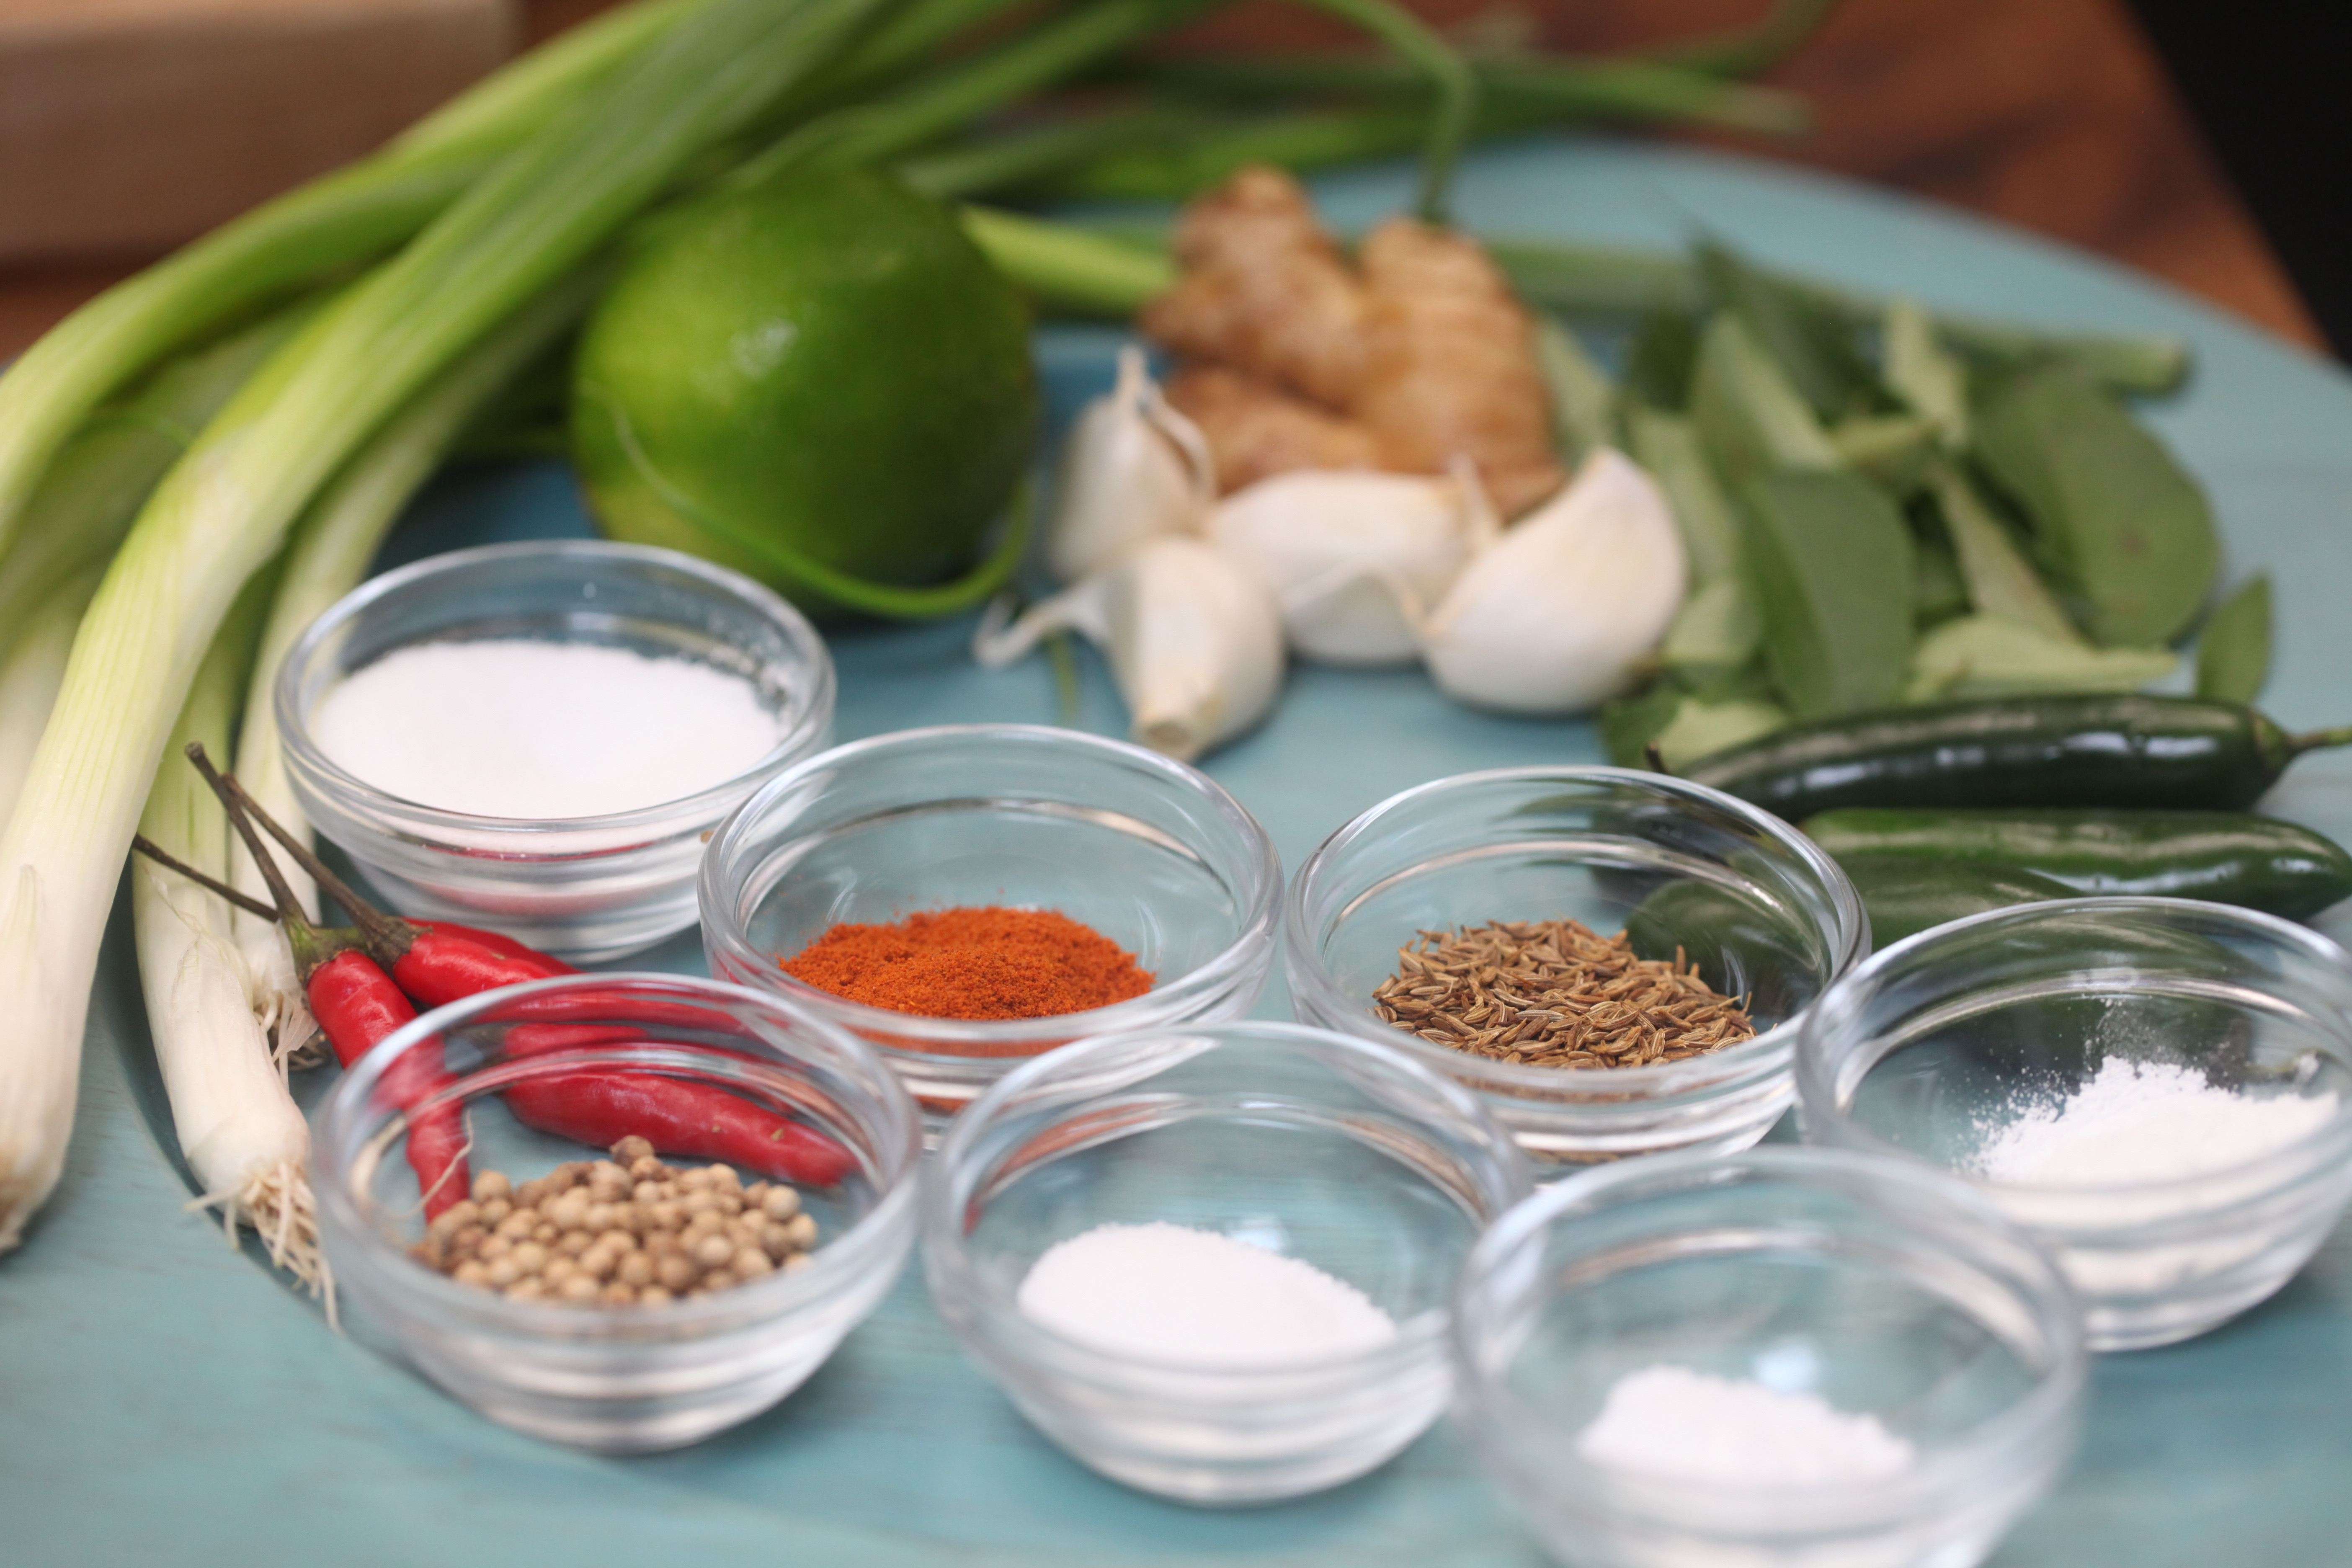 Spices and other ingredients